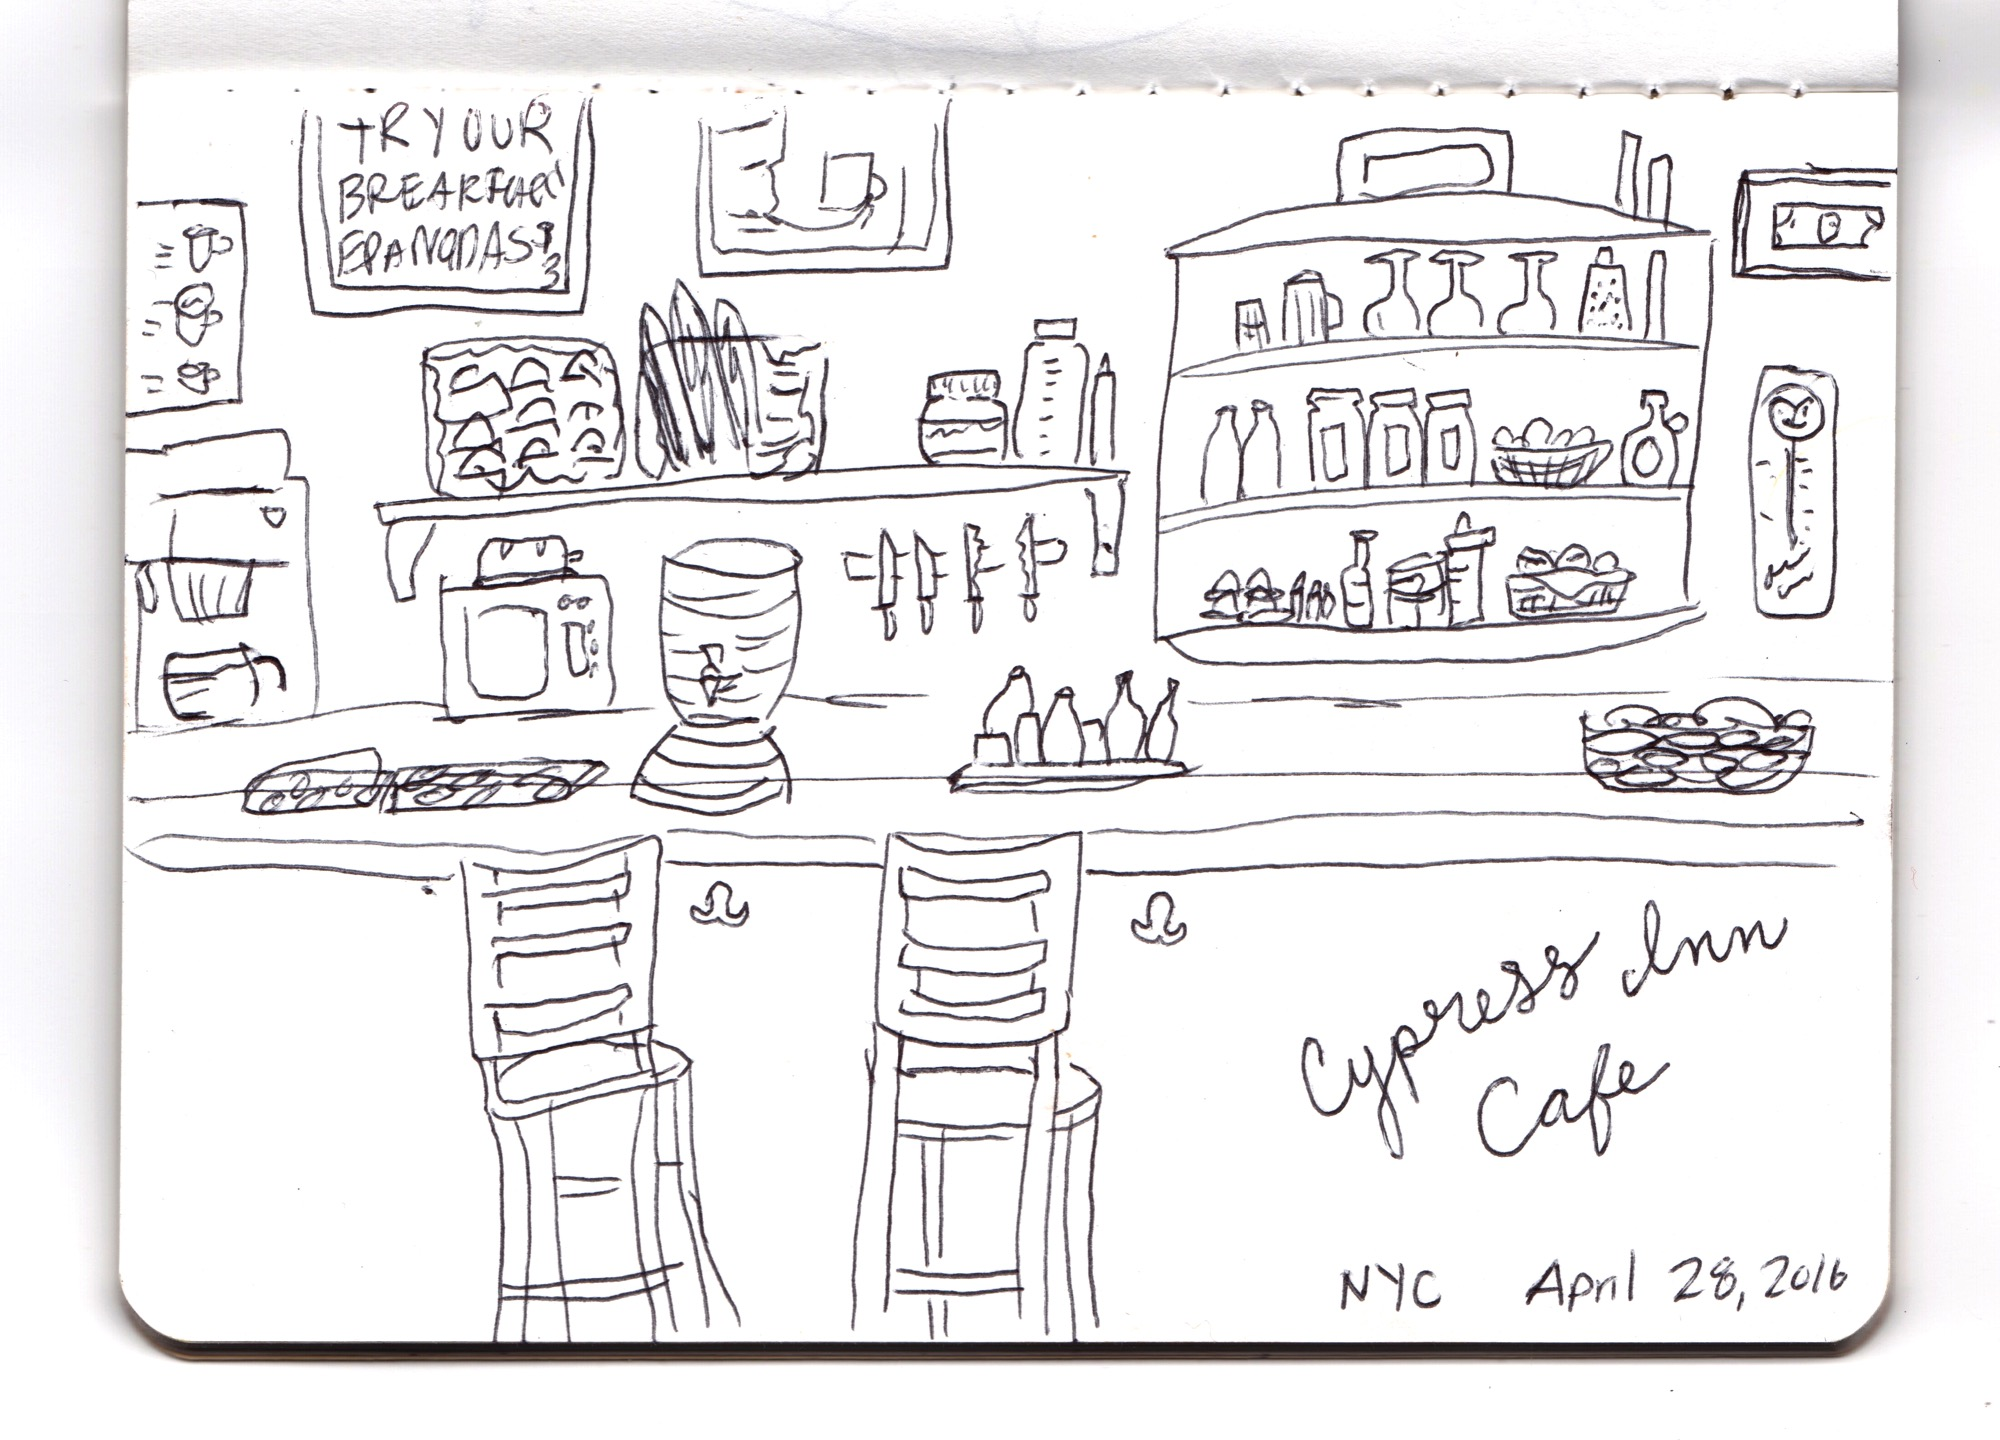 Cypress Inn Cafe Sketch by Lisa Bardot